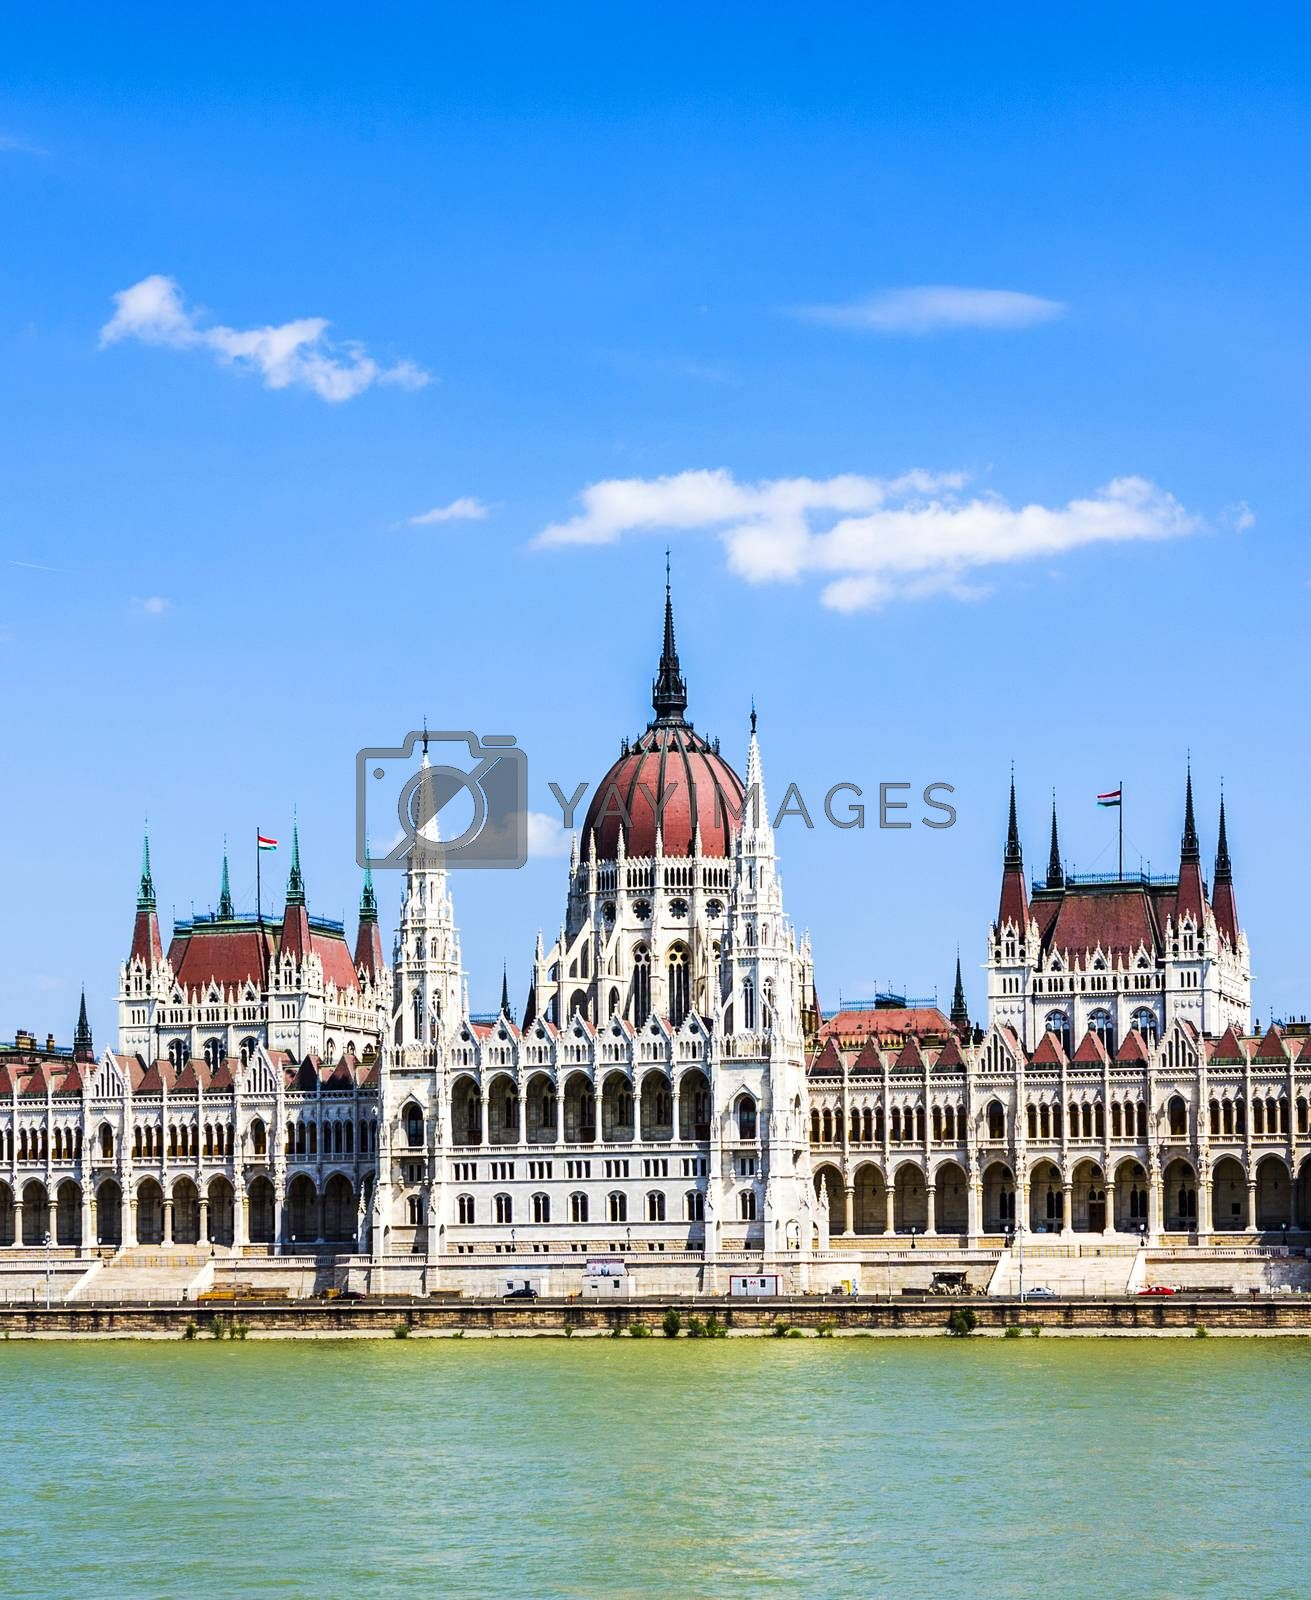 Royalty free image of famous parliament of Hungary in Budapest, view over river danubia by meinzahn